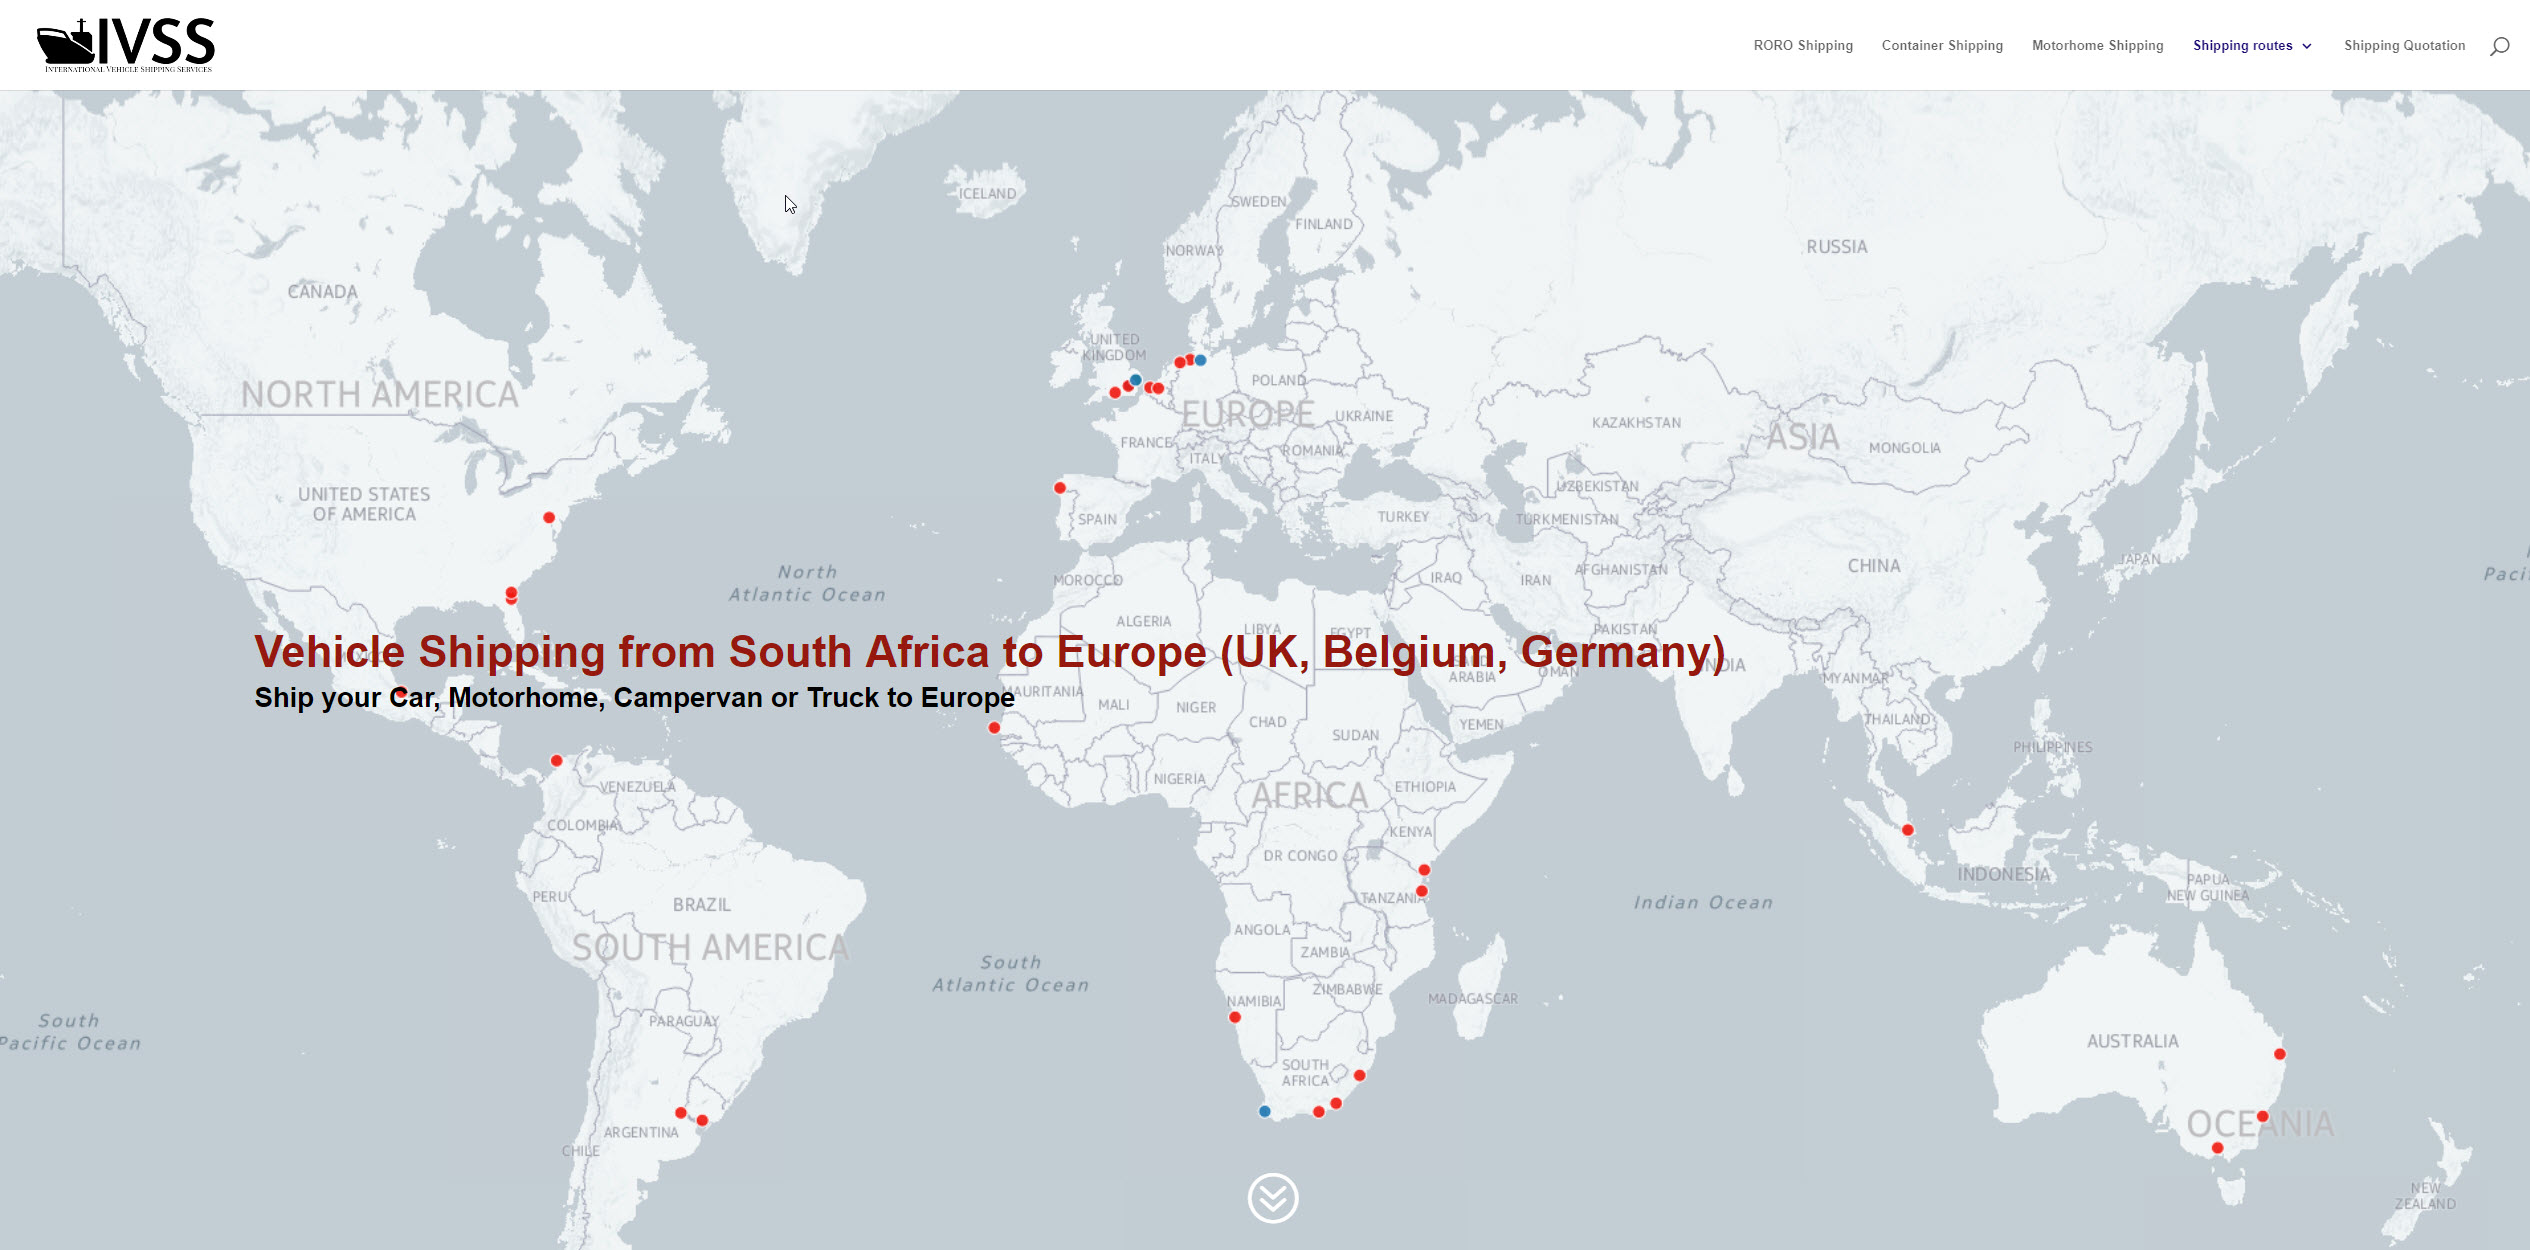 Map Of Africa Europe And Asia.Vehicle Shipping From South Africa To Europe Uk Belgium Germany